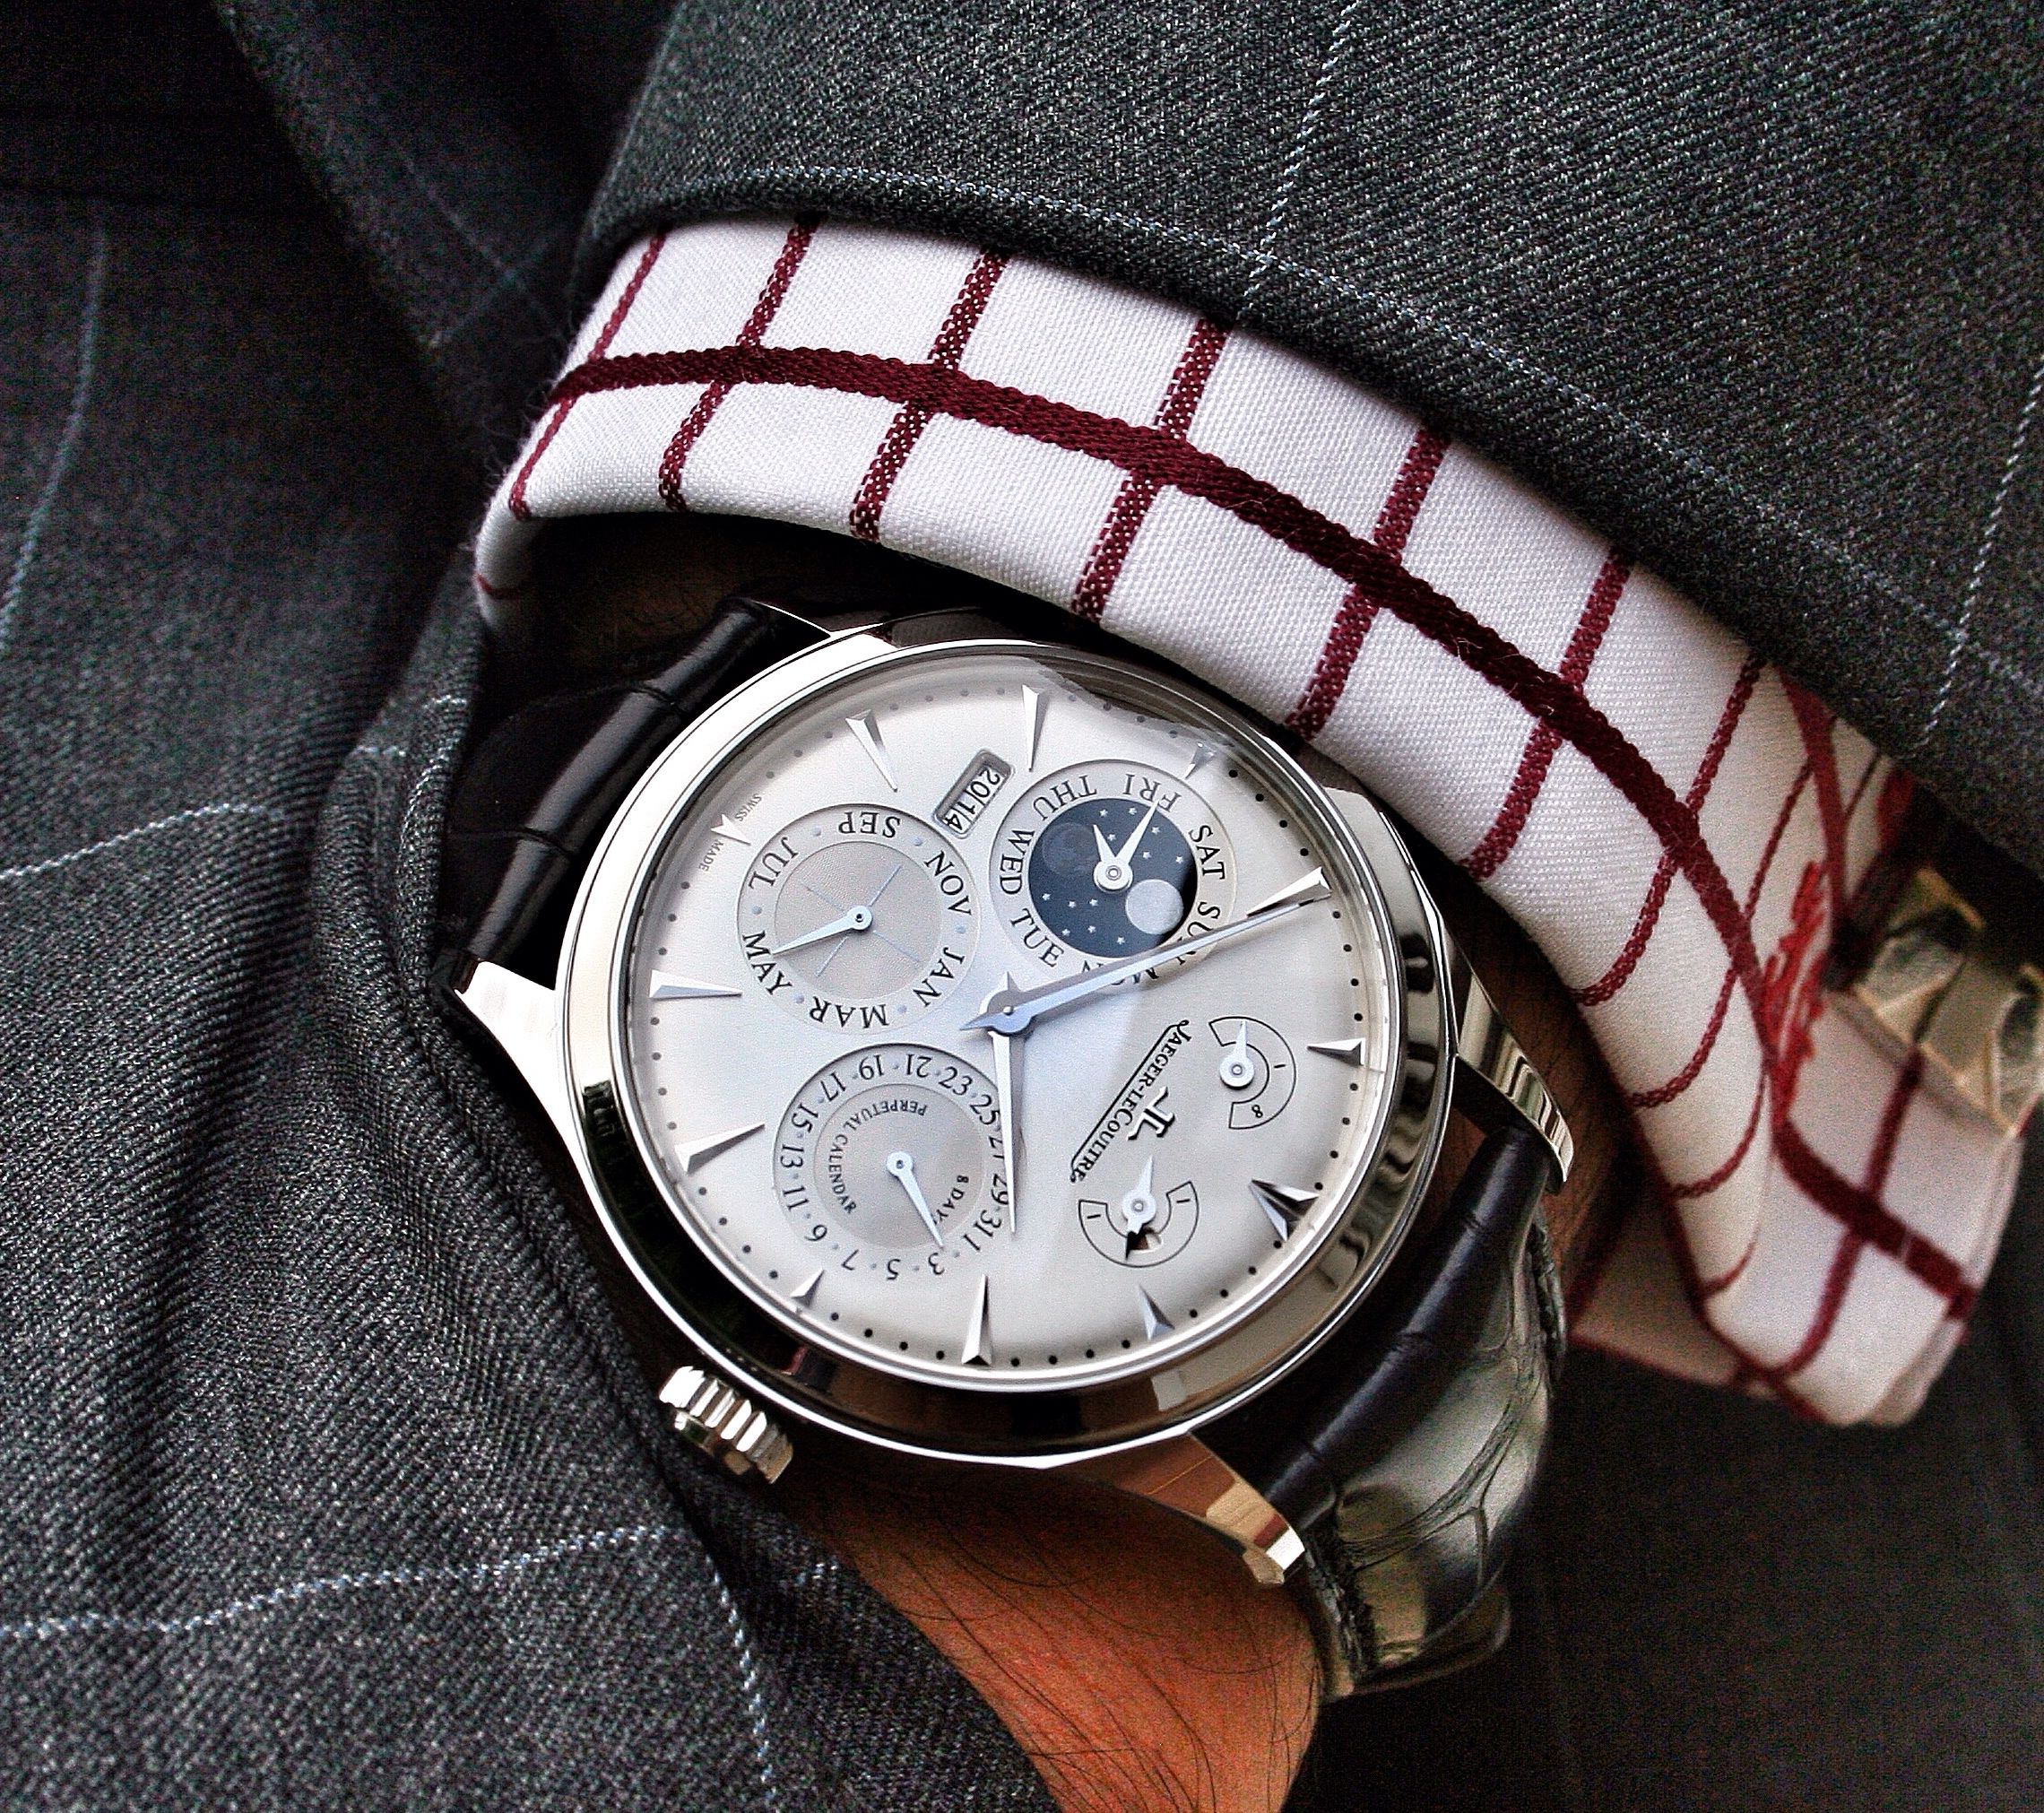 Jaeger-LeCoultre NEW Master Eight Days Perpetual Q1618420  (Retail:HK$175,000) OUR PRICE 售價: HK$129,800. #jlc #ja… | Jaeger lecoultre,  Wrist shot, The eighth day